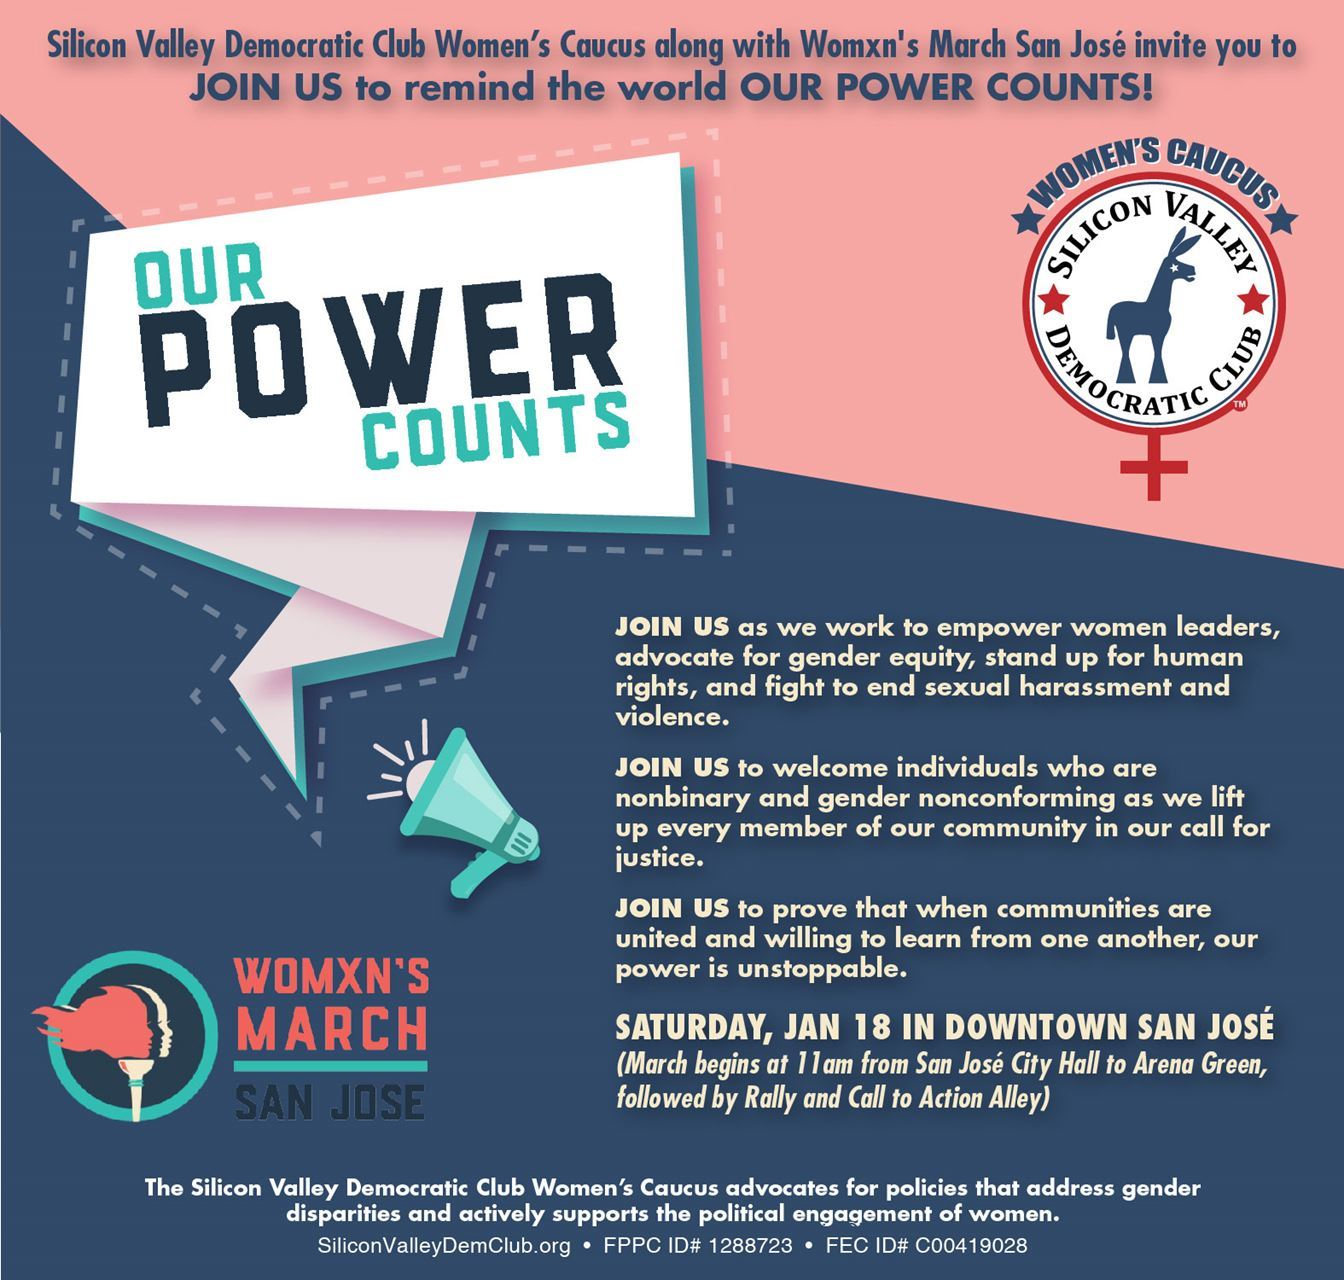 Our Power Counts - Womxn's March - Jan 18, 2020 at 11am in Downtown San Jose